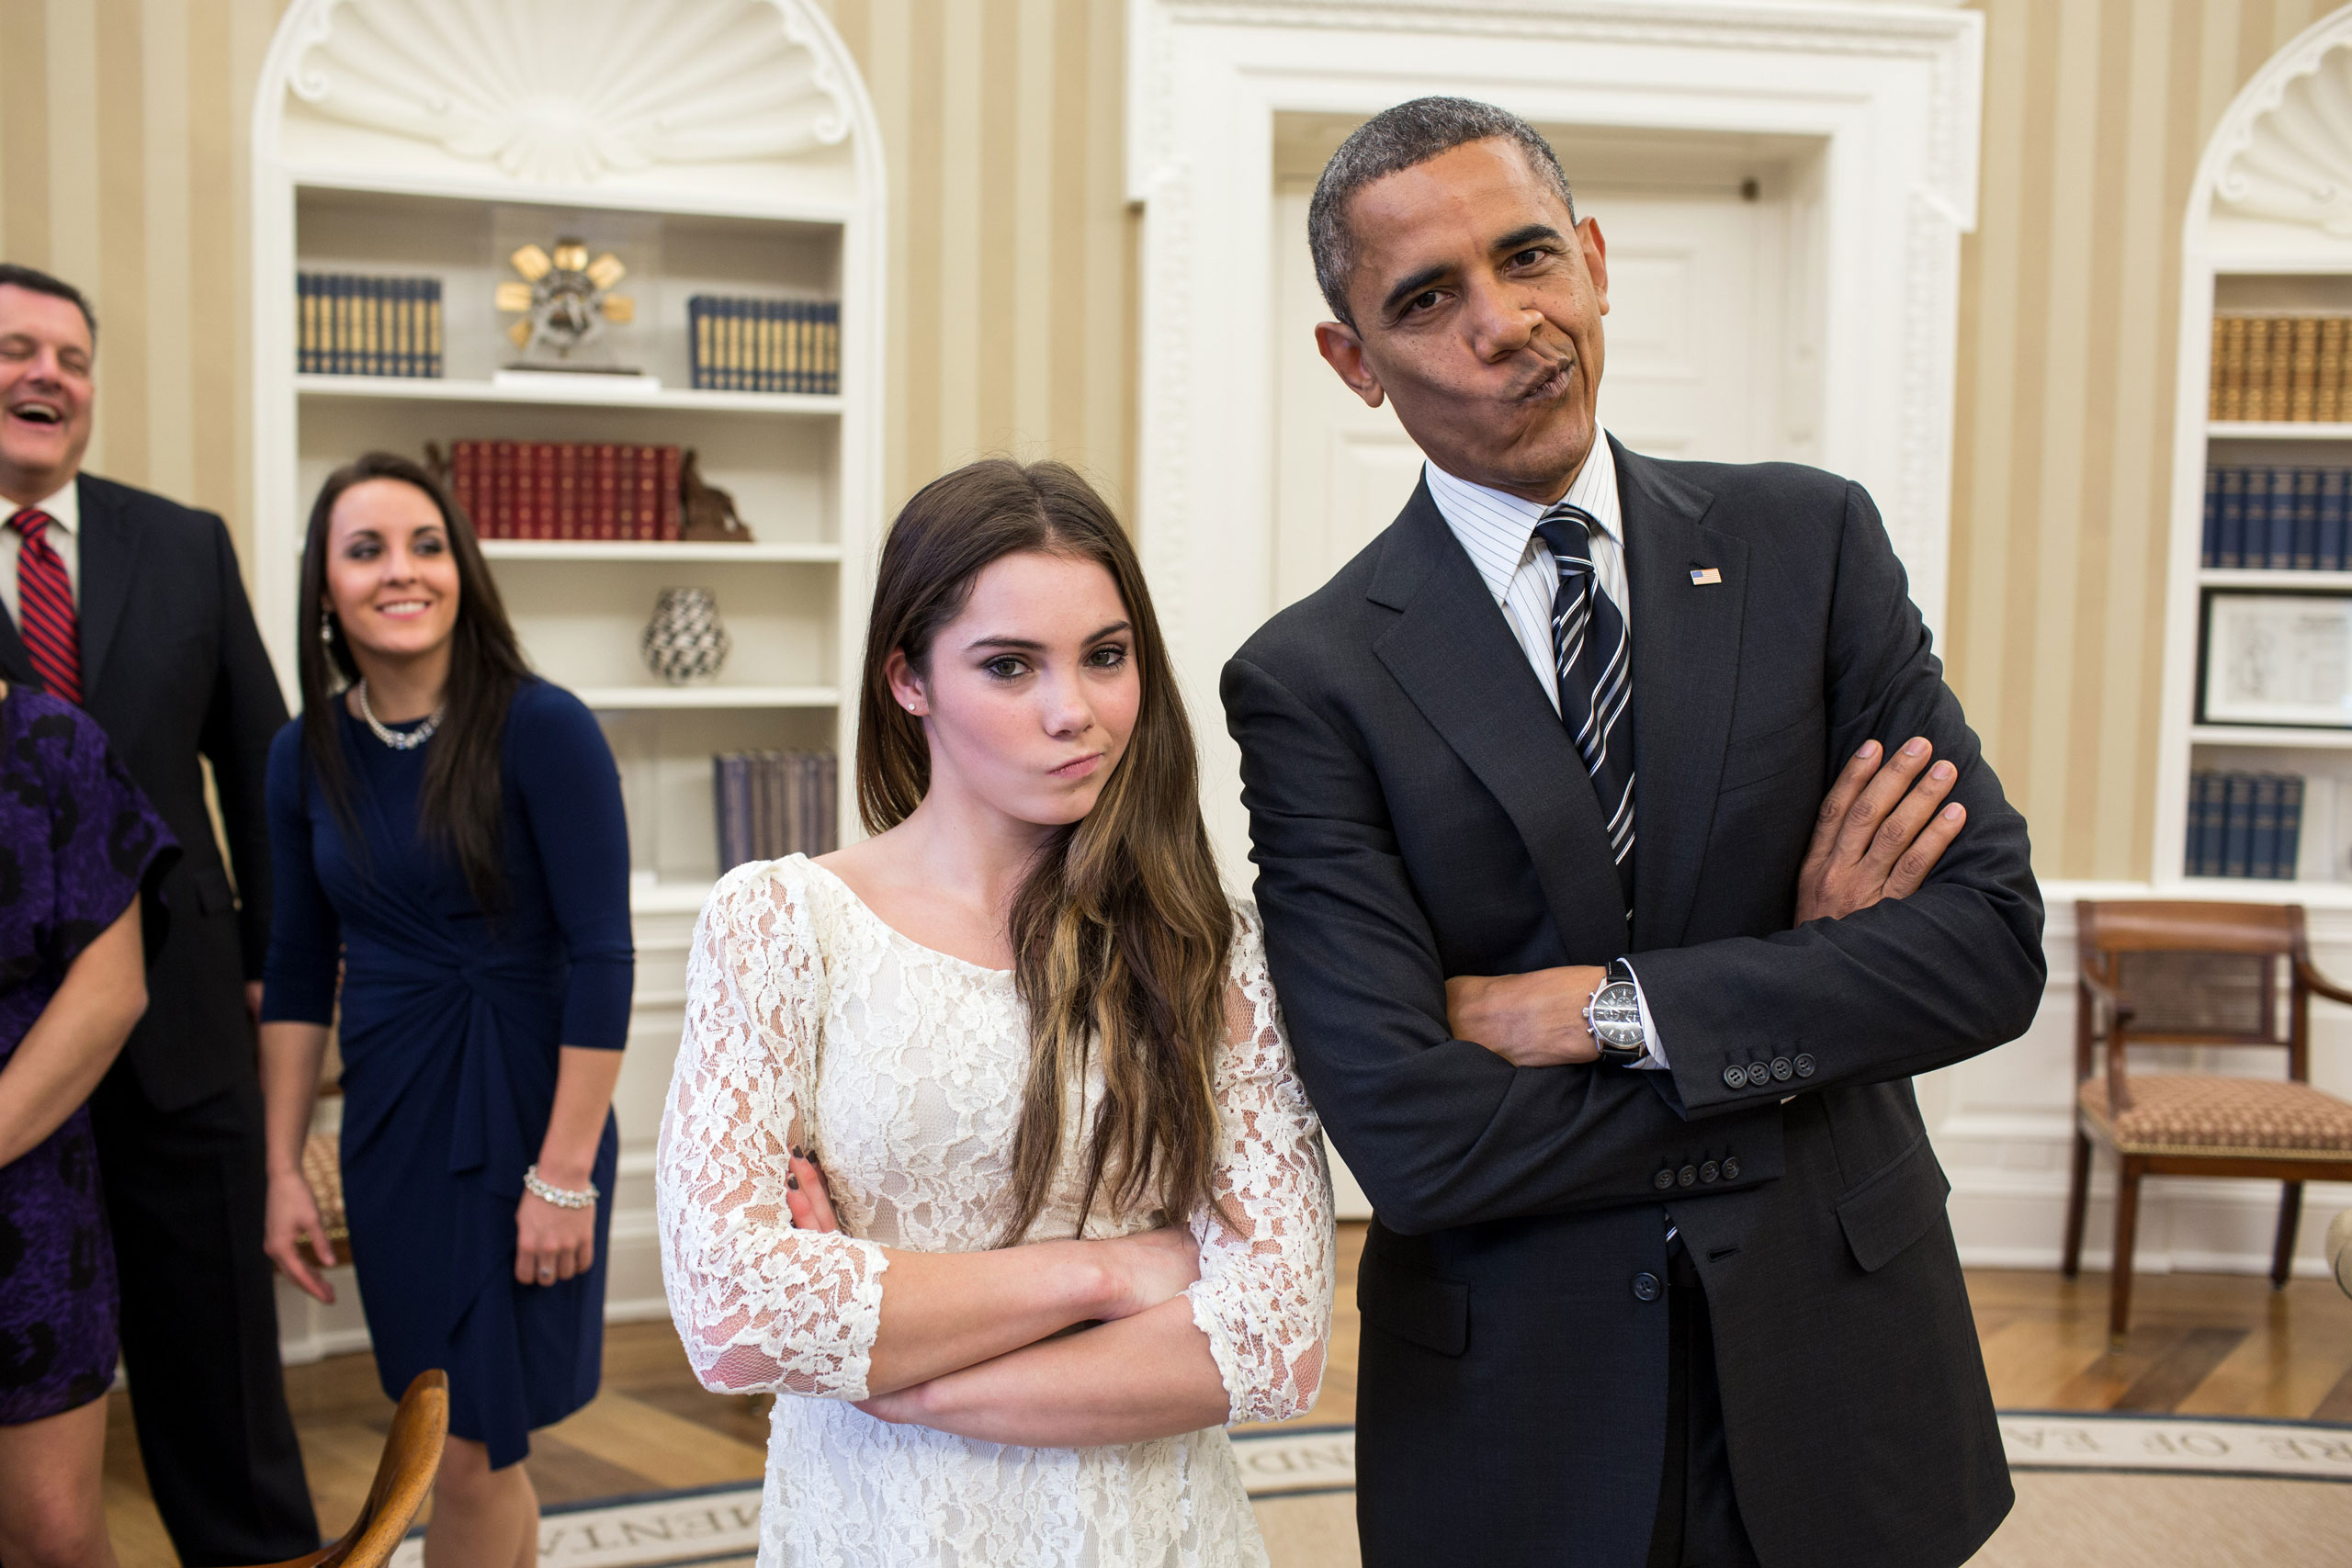 The President had just met with the U.S. Olympics gymnastics team, who because of a previous commitment had missed the ceremony earlier in the year with the entire U.S. Olympic team. The President suggested to McKayla Maroney that they recreate her 'not impressed' photograph before they departed,  Nov. 15, 2012.